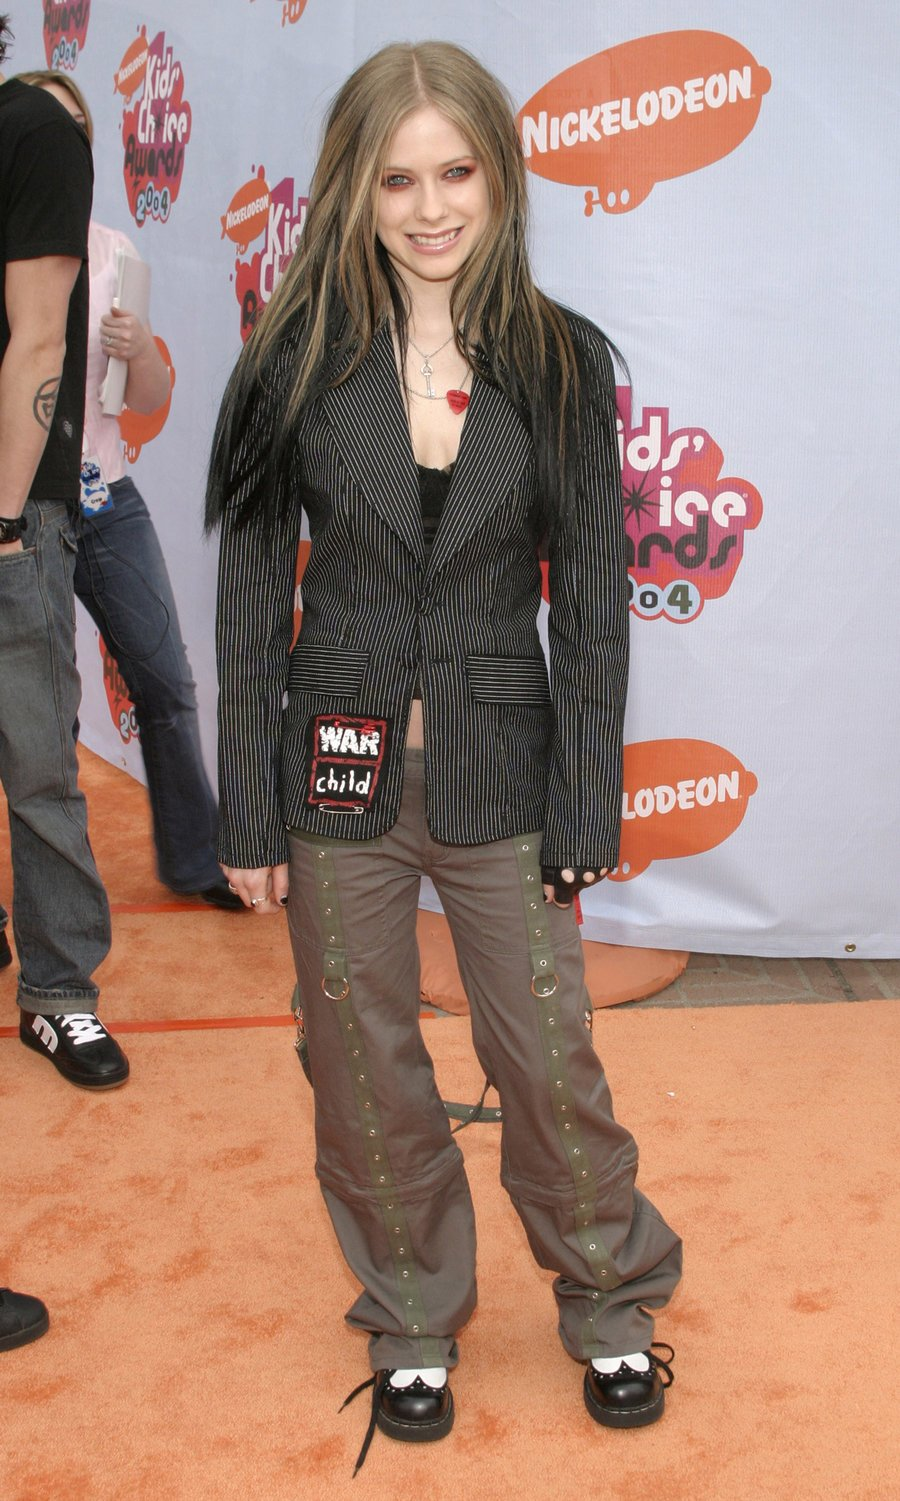 Check out how Avril Lavigne's fashion evolved throughout the years https://t.co/aGl820eqDW #AvrilOnBillboard https://t.co/HlXmEIbWLs